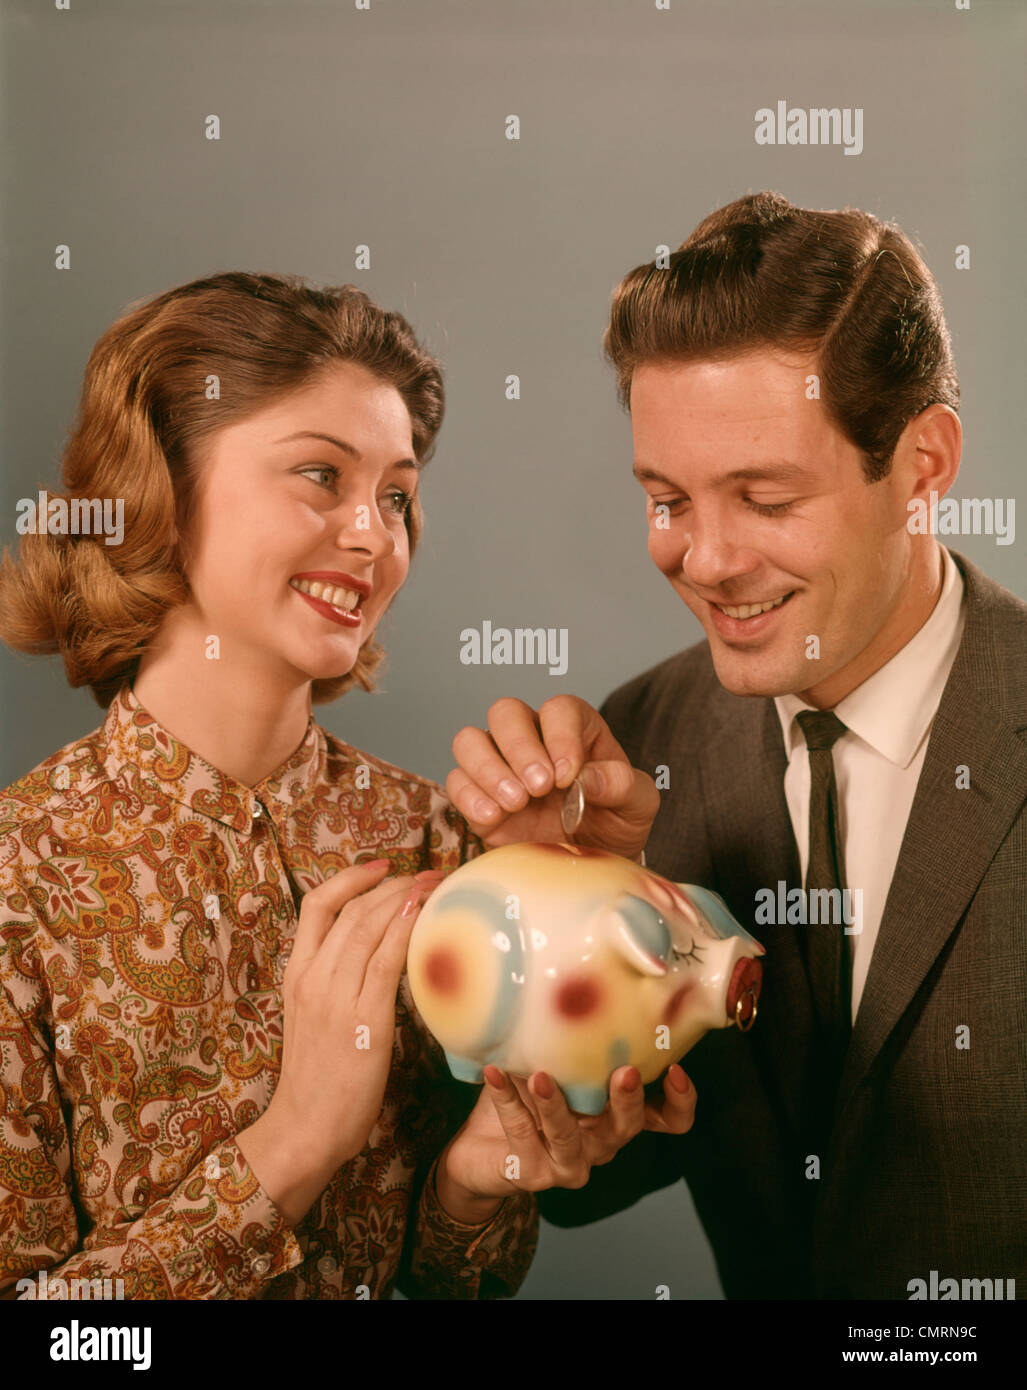 1960 1960s HAPPY SMILING COUPLE PUTTING COINS INTO PIGGY BANK PIG FINANCE MONEY SAVINGS BANKING SAVING COUPLES RETRO - Stock Image